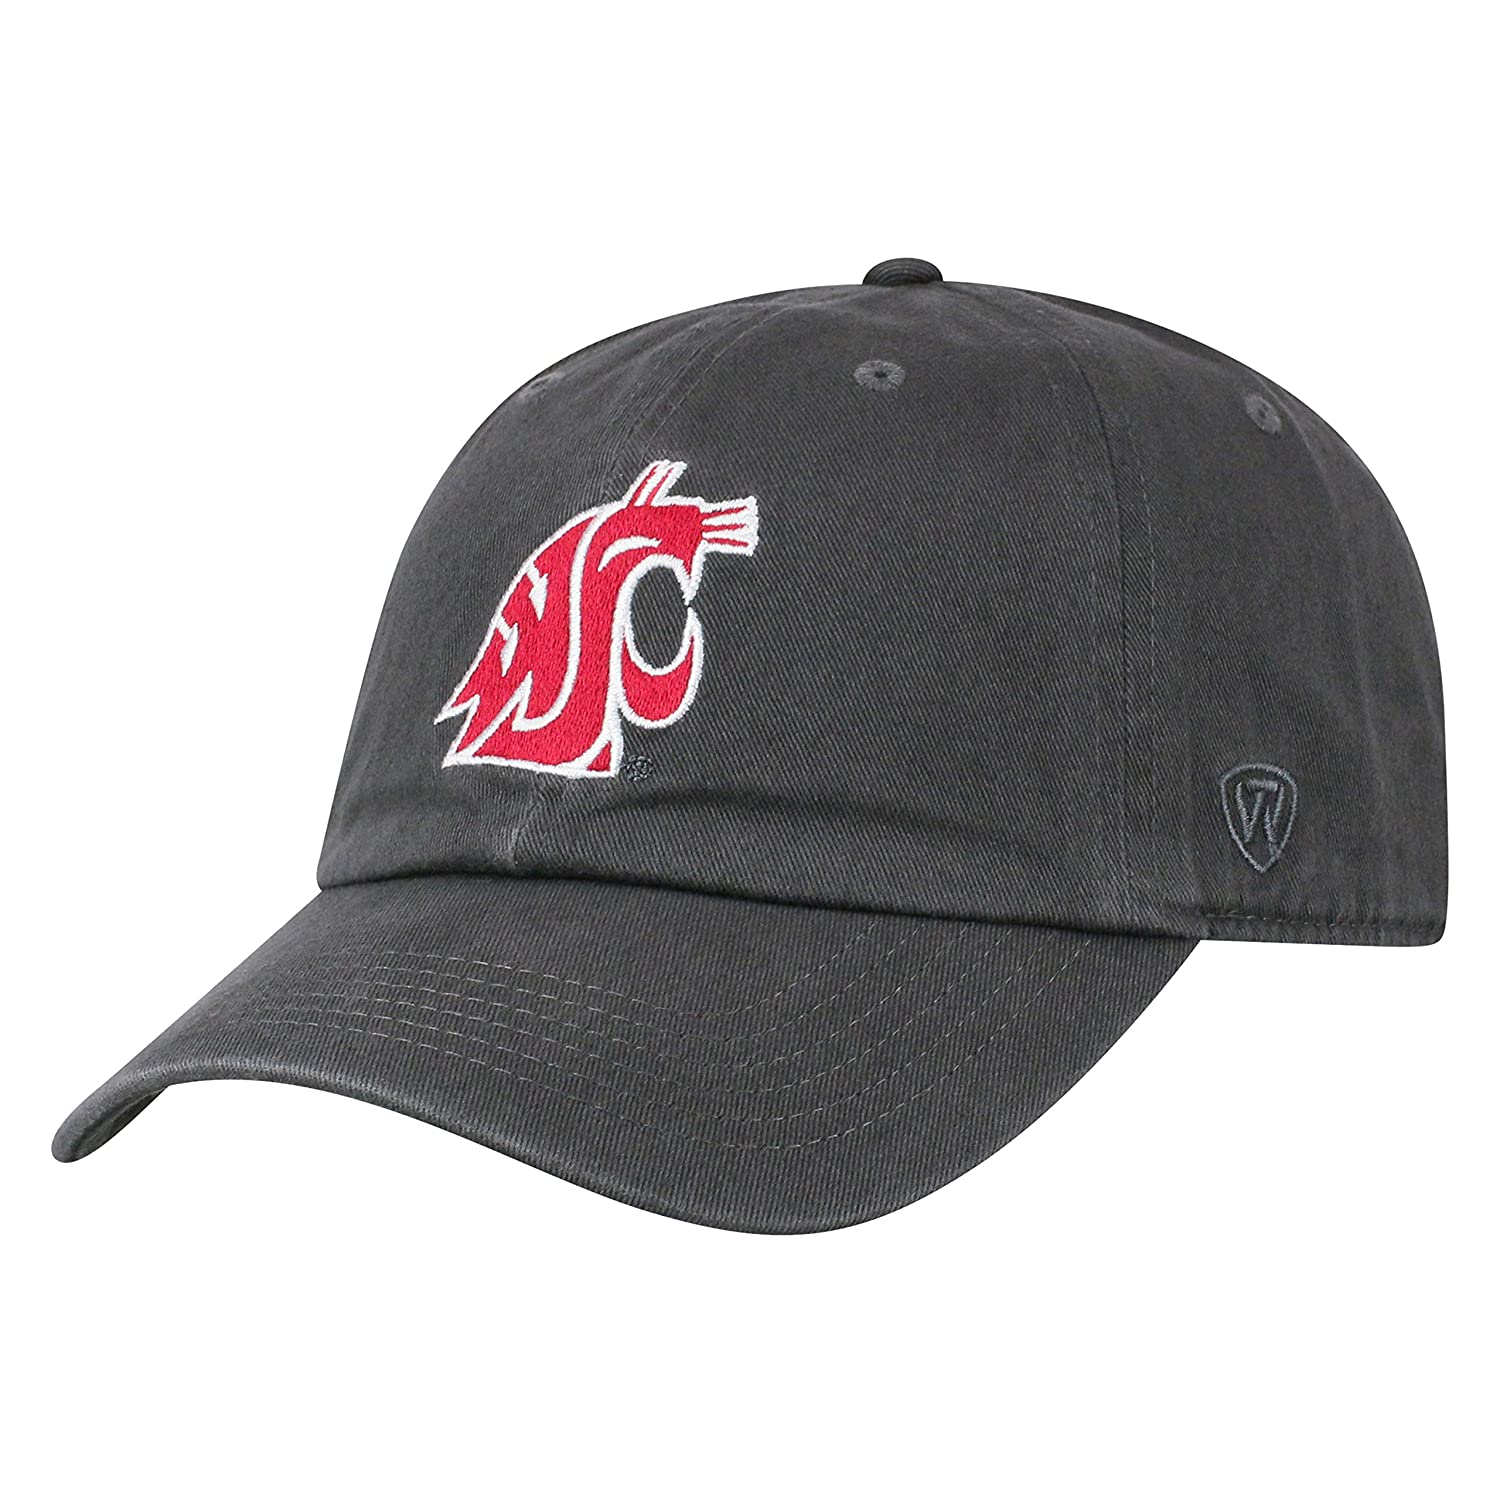 07f89628e7c9f Amazon.com   Top of the World NCAA Air Force Falcons Men s Adjustable  Relaxed Fit Charcoal Icon Hat